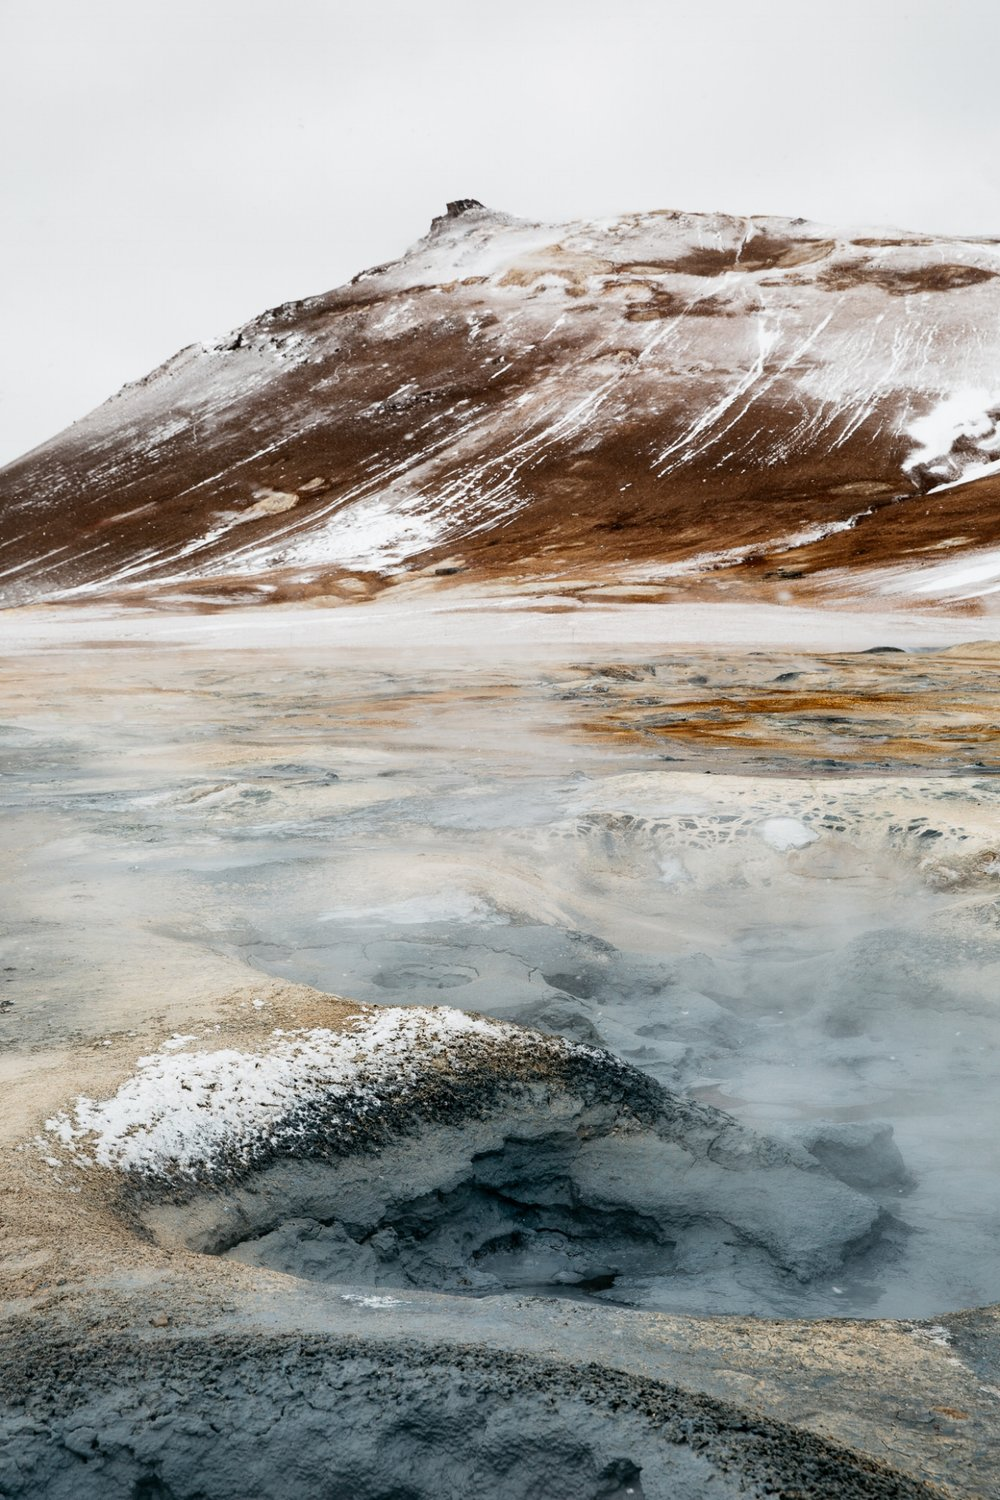 geothermal activity in iceland with snow capped mountain in background